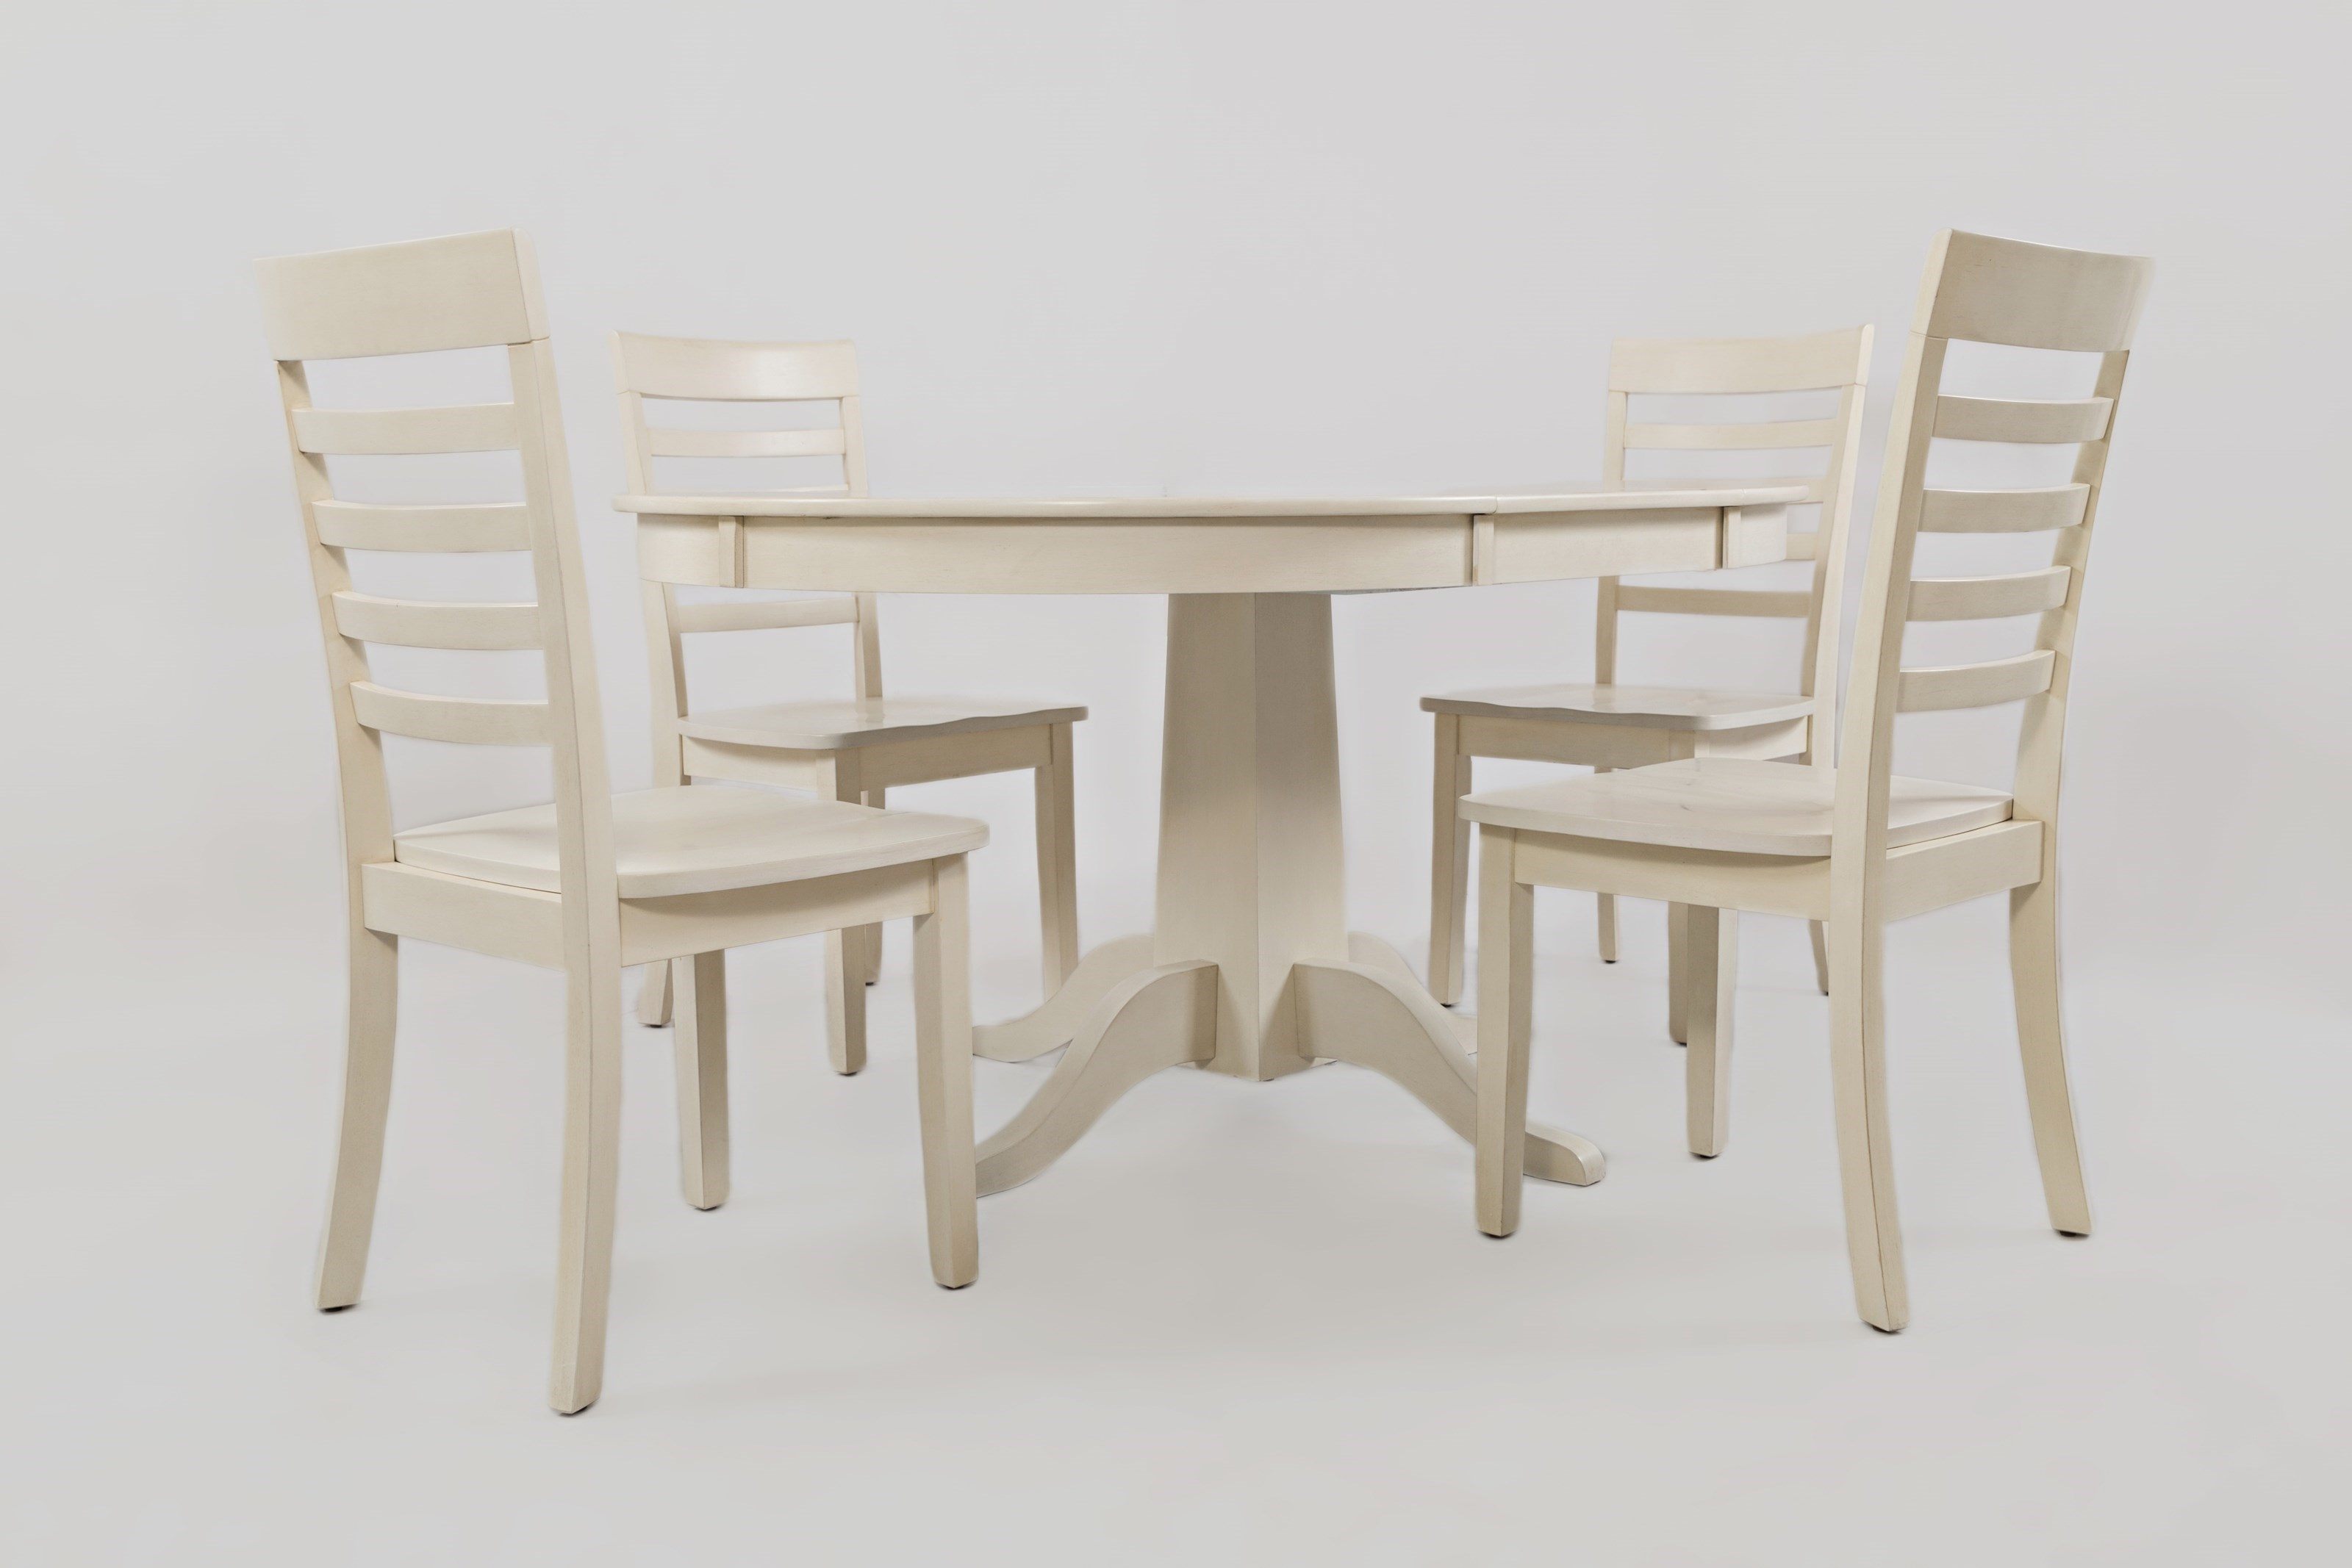 Jofran Everyday Classics Kitchen Table and 4 Chair Set  : products2Fjofran2Fcolor2Feveryday20classics1629 60b2B60t2B4x912kd b1jpgscalebothampwidth500ampheight500ampfsharpen25ampdown from www.godbyhomefurnishings.com size 500 x 500 jpeg 18kB